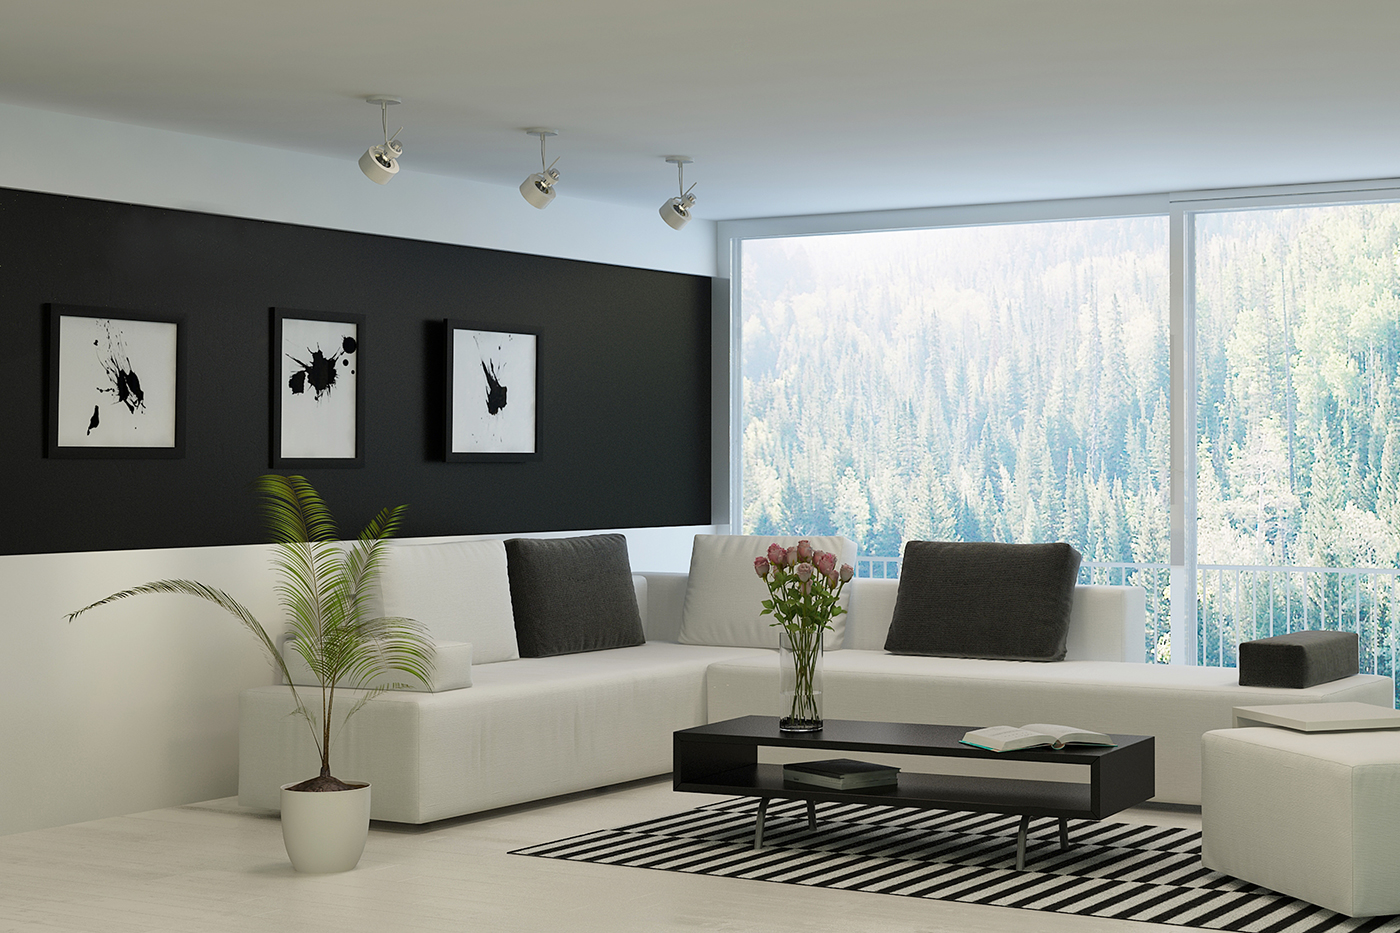 Interior Design Wall Painting: Ask A Pro Q&A: Is Black Paint Too Dark For Walls?